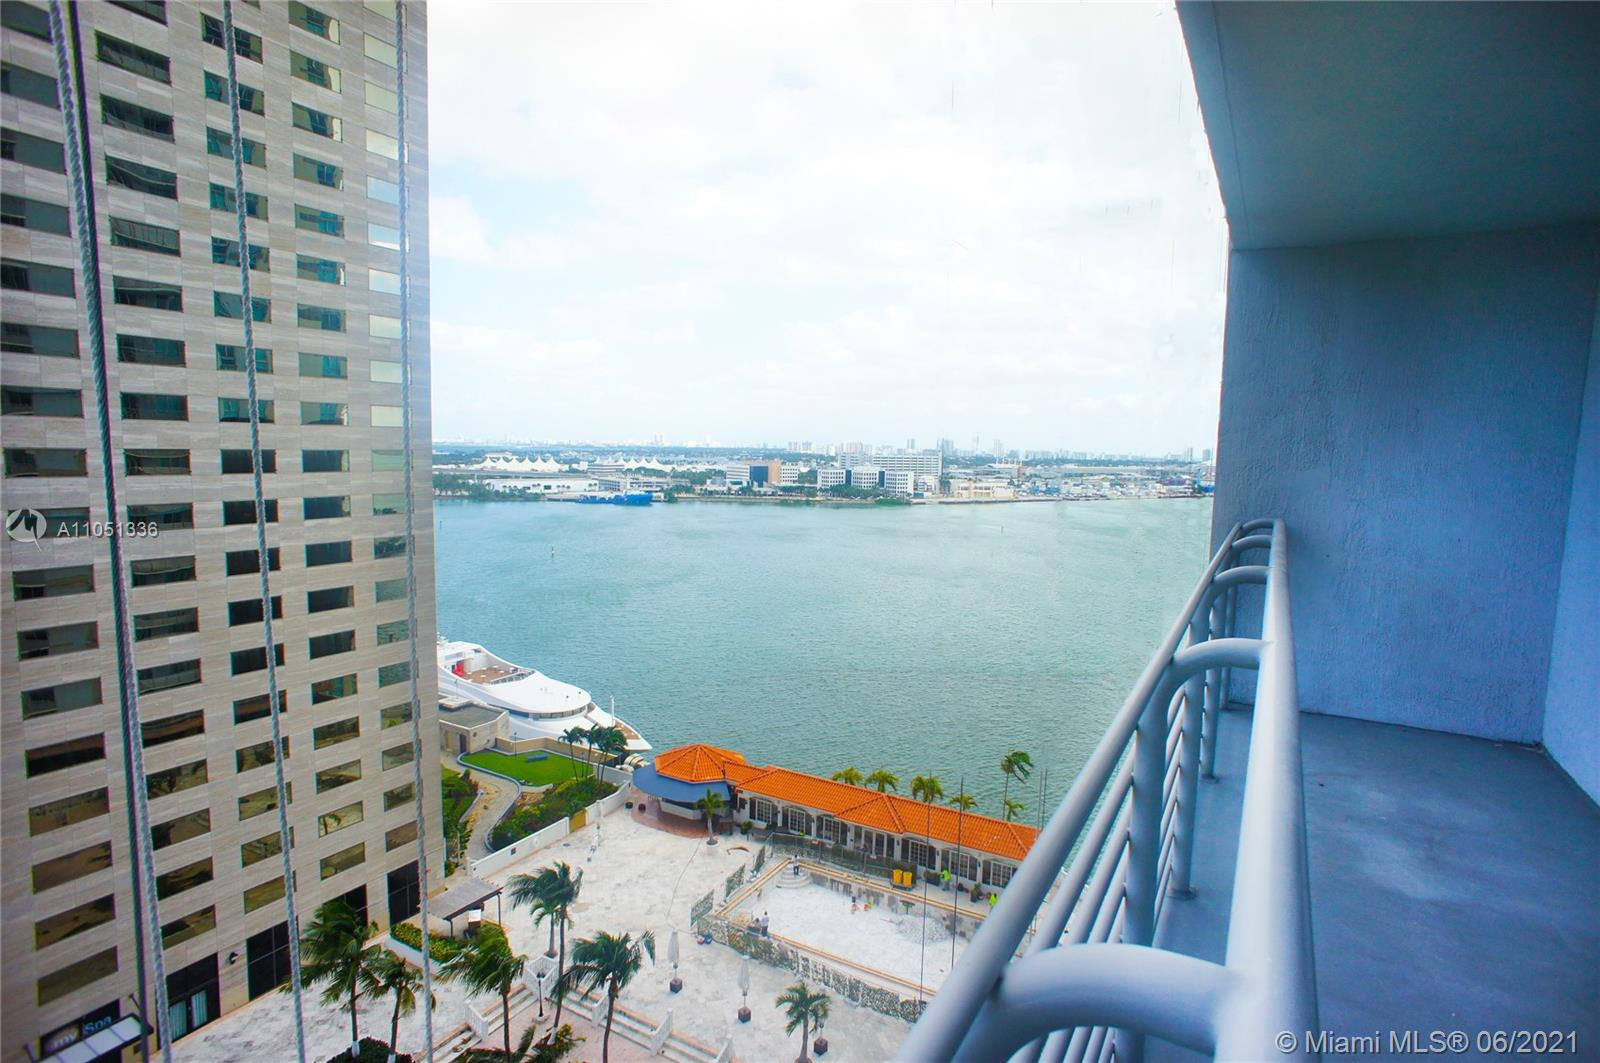 Impeccable and beautiful 1 Bed 1 Bath unit in desirable One Miami East.  Features wood floors, stainless steel appliances and a great view of the city and bay. Close to entertainment, shopping and beaches. Priced to sell. Great conditon, very well taken care of. Resort-Style amenities, and walking distance to Urban downtown, Brickell, Bayside Park, shops and more.  Easy access to I-95.